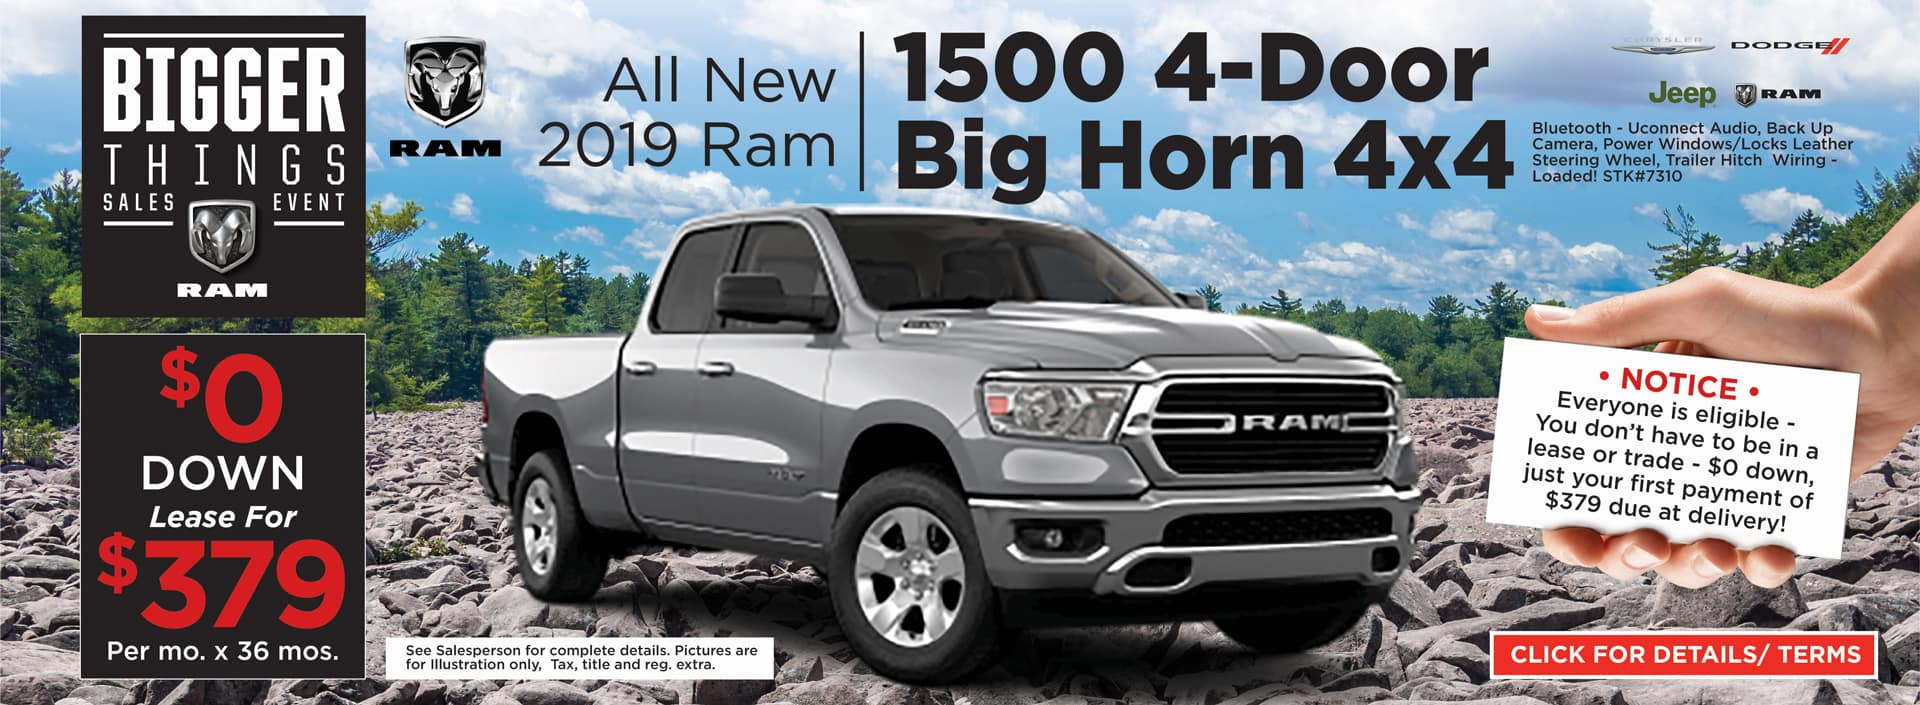 hight resolution of 2019 ram 1500 big horn